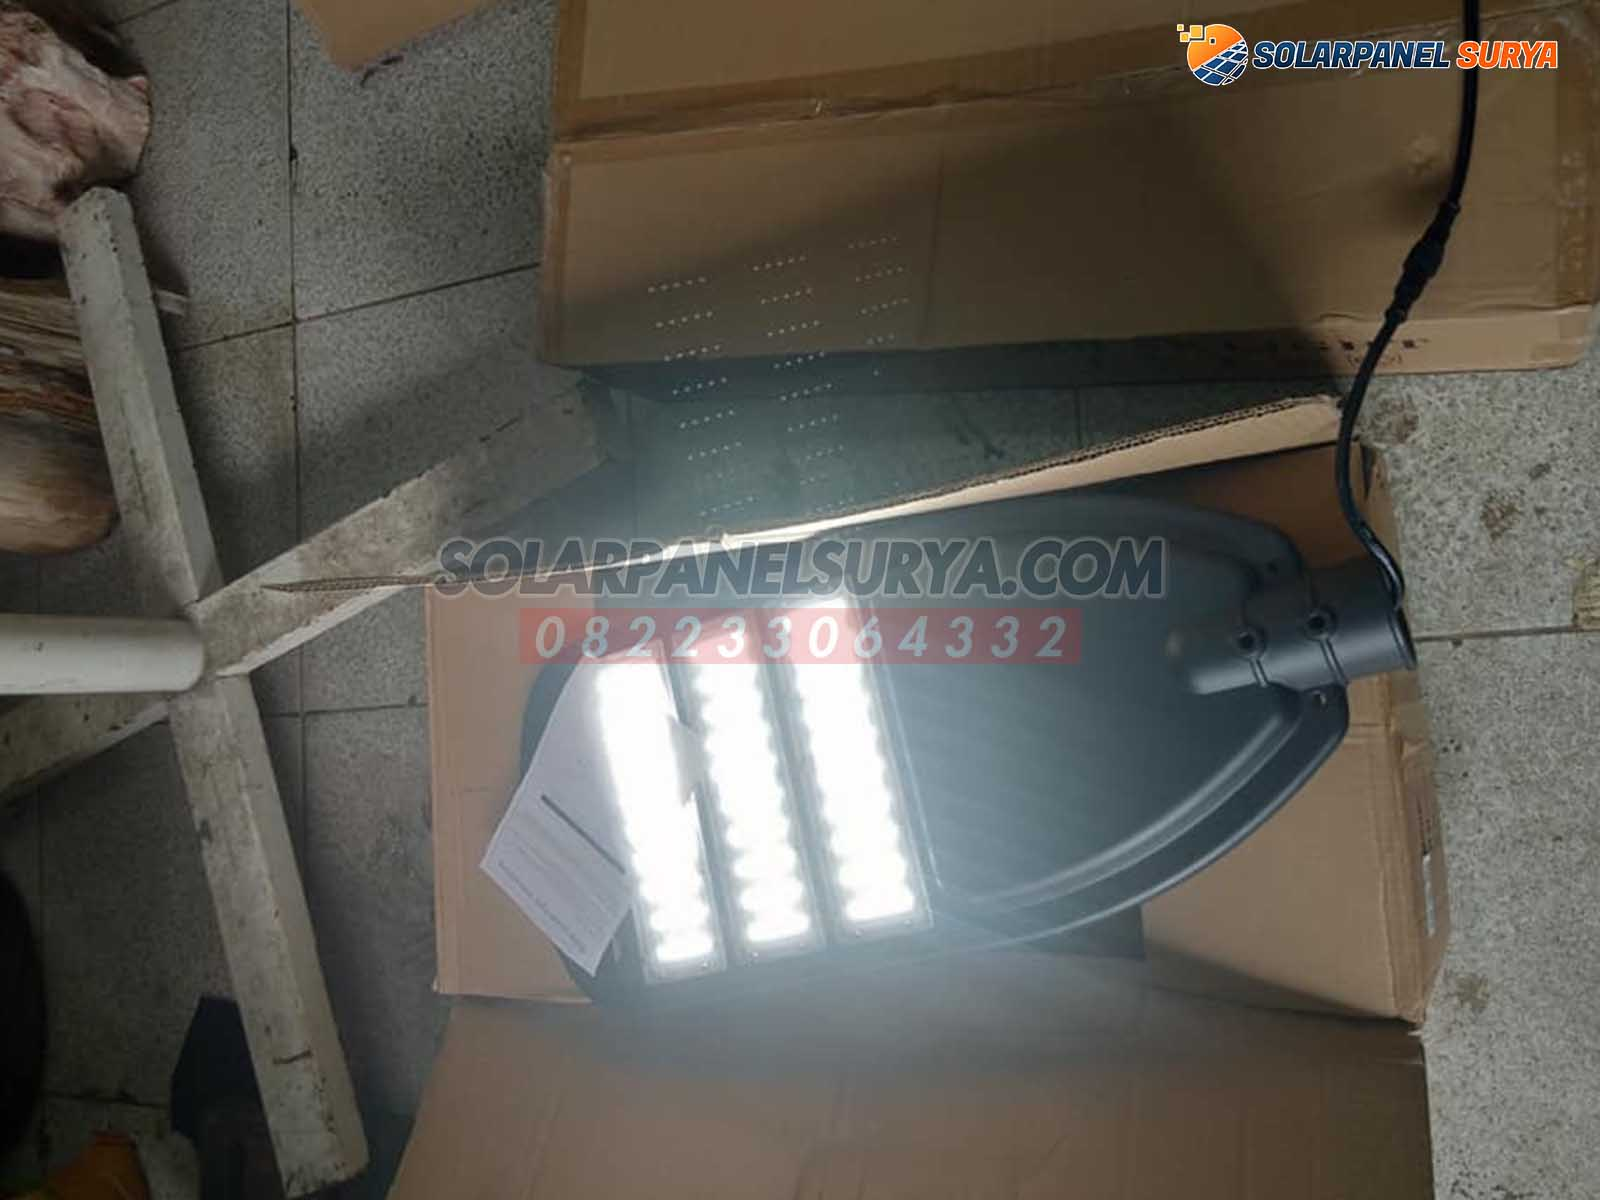 jual lampu PJU Tenaga Surya Two In One 60 Watt